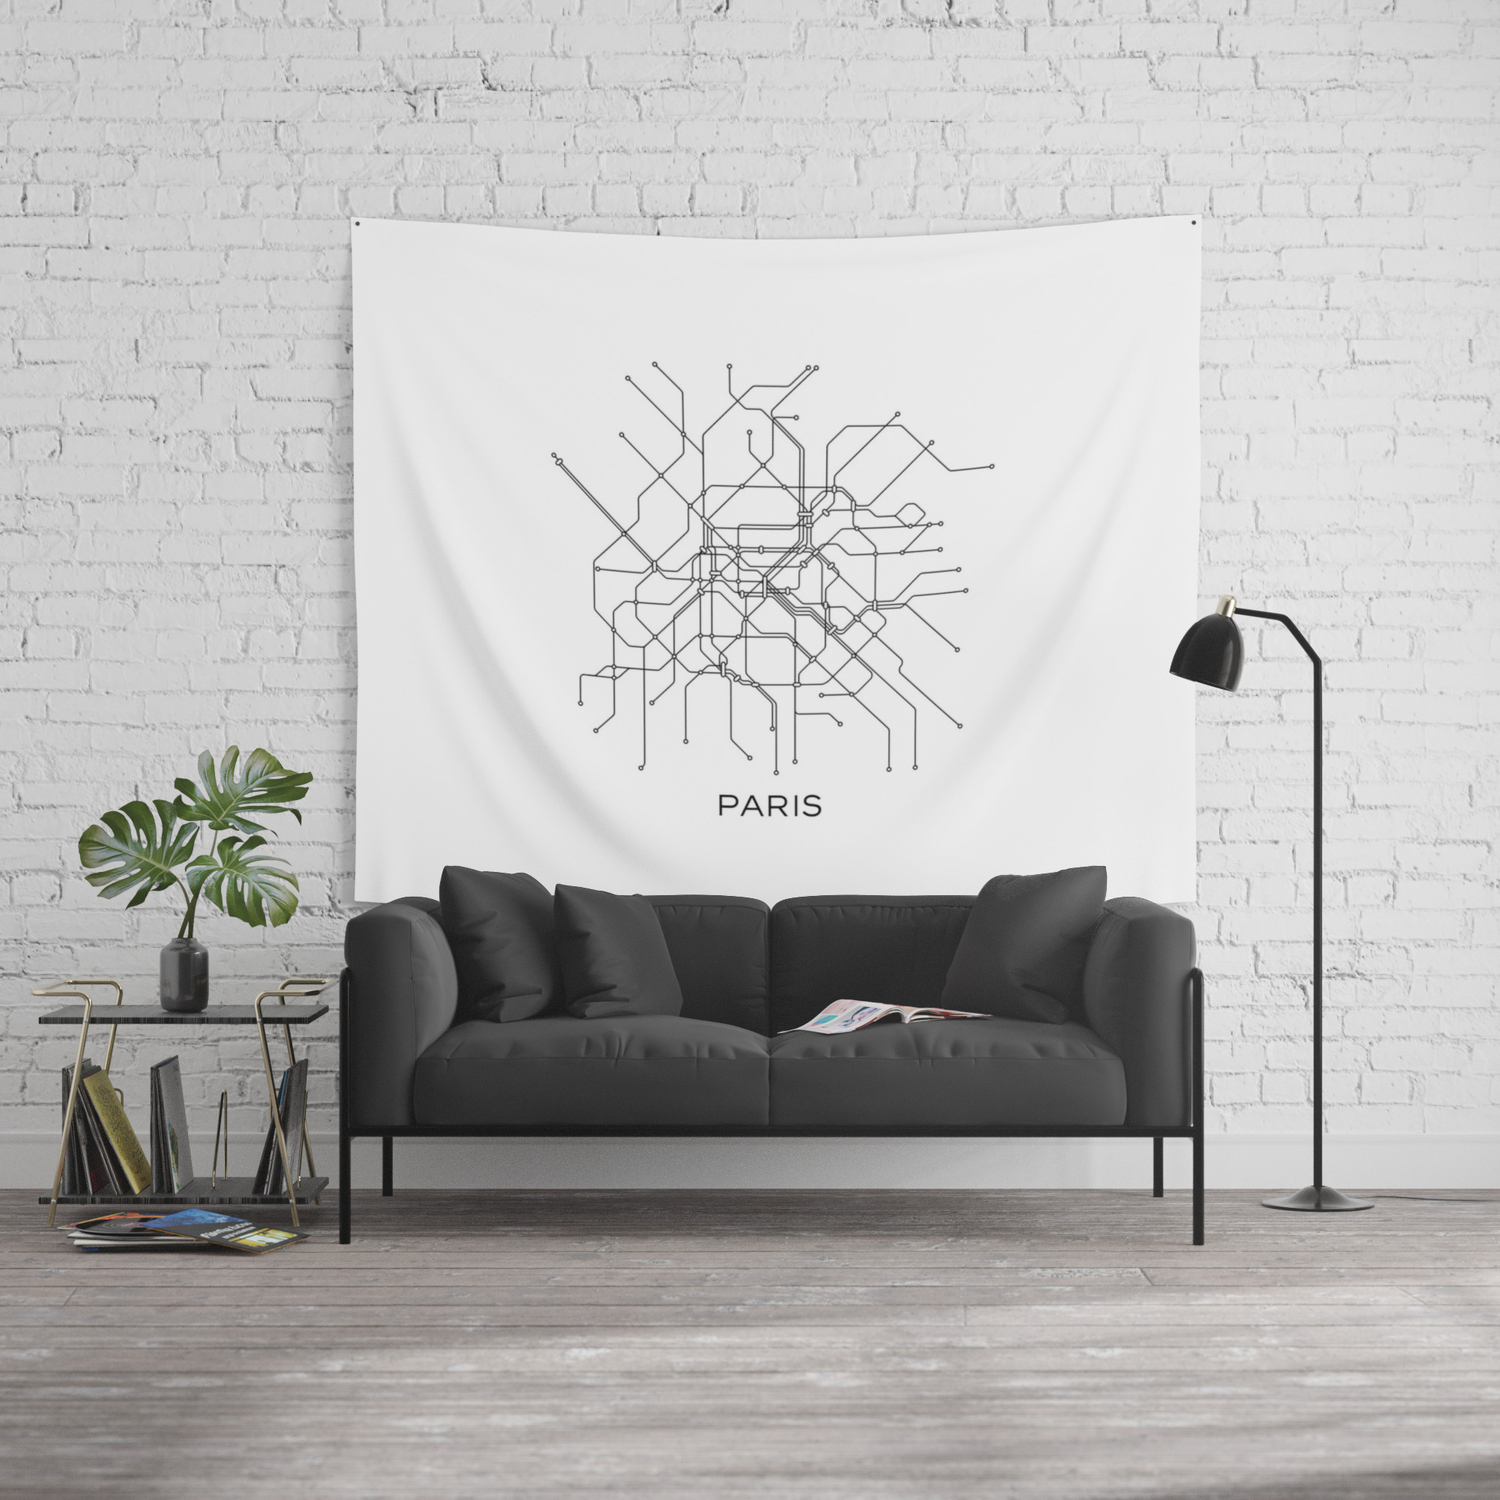 Black And White Subway Map Tapestry.Paris Metro Map Subway Map Paris Metro Graphic Design Black And White Canvas Metropolian Art Wall Tapestry